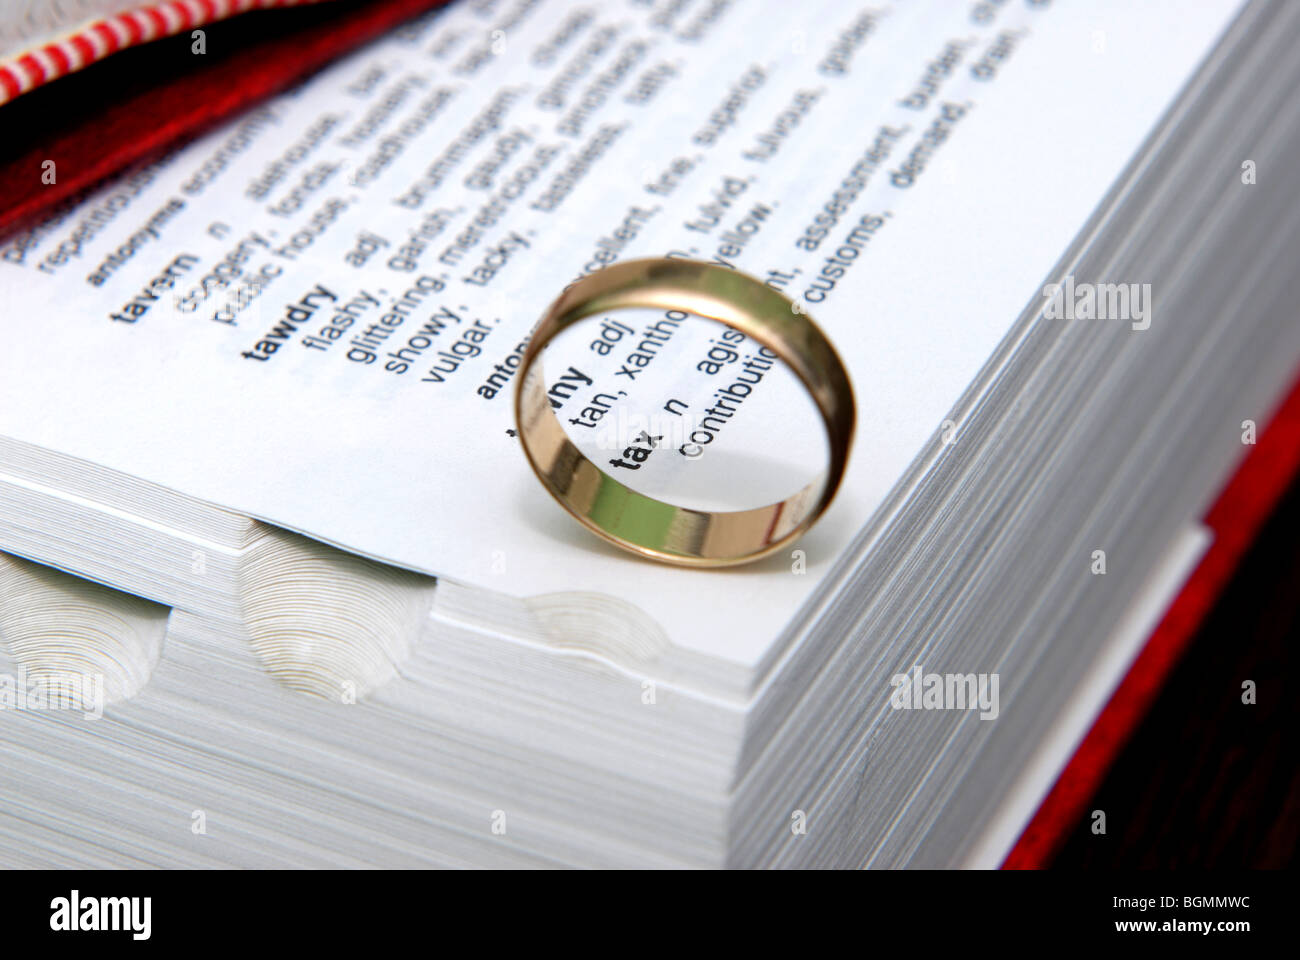 wedding ring on dictionary and thesaurus with the words Tax